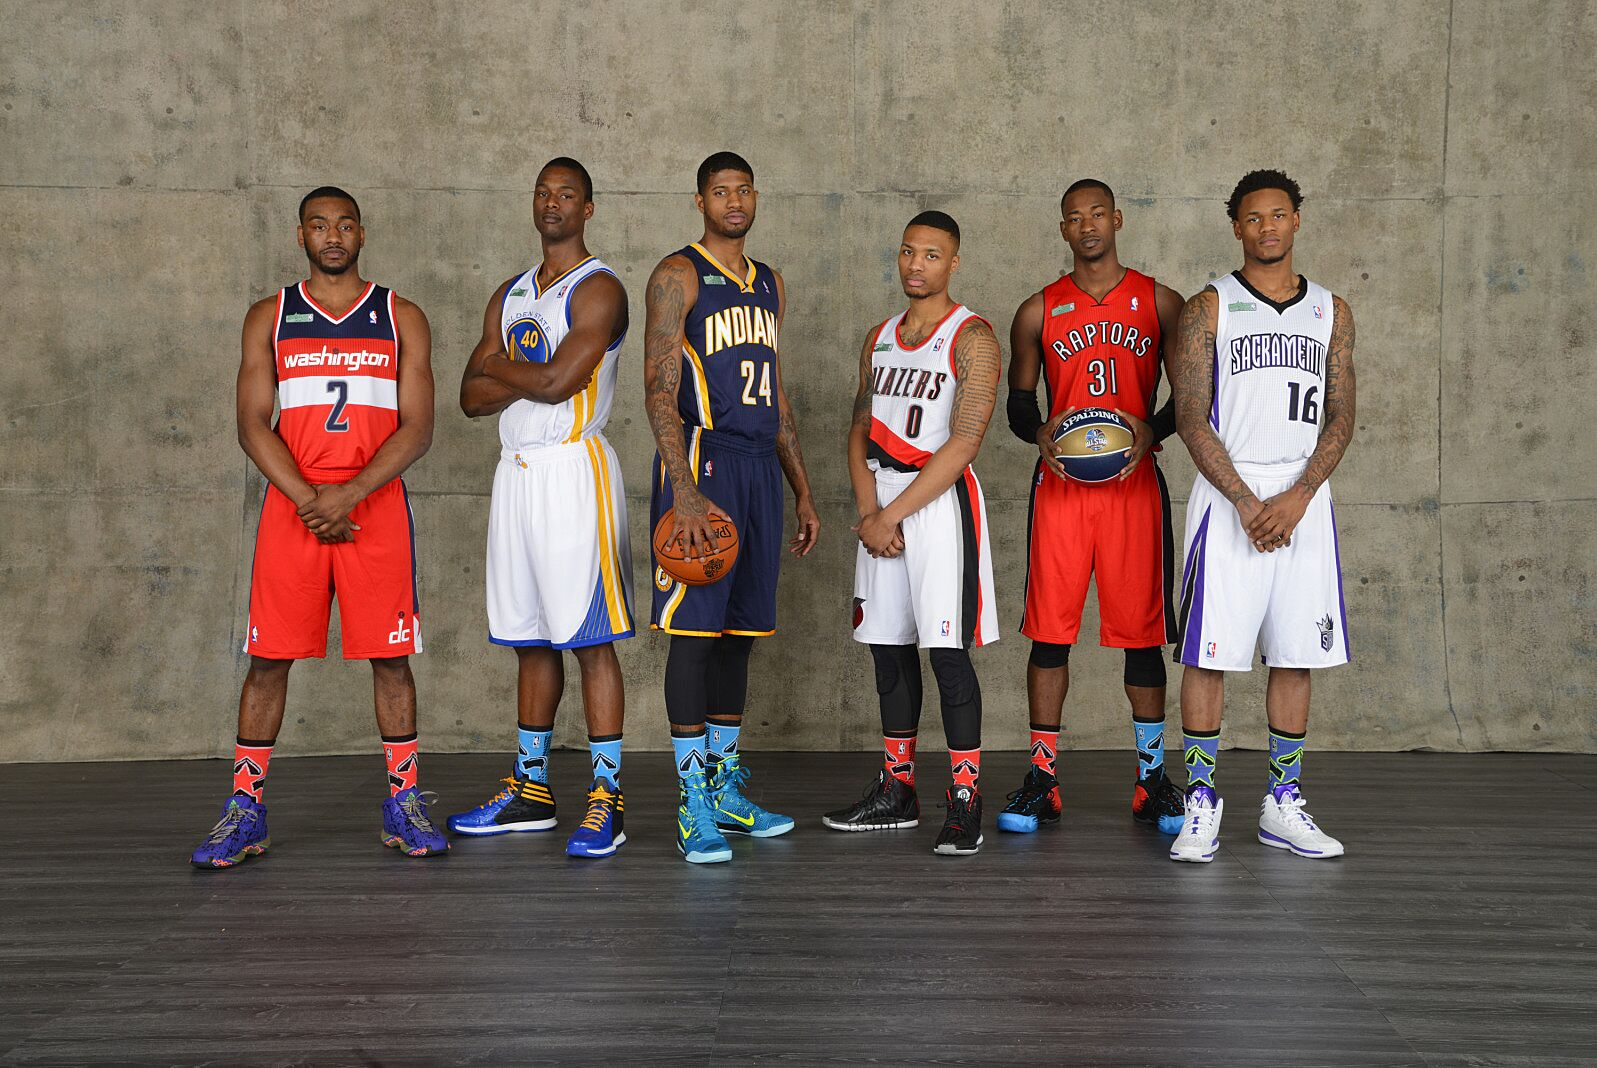 newest 6afc0 ce89a All-Star Weekend Rewind: John Wall Wins 2014 Slam Dunk ...